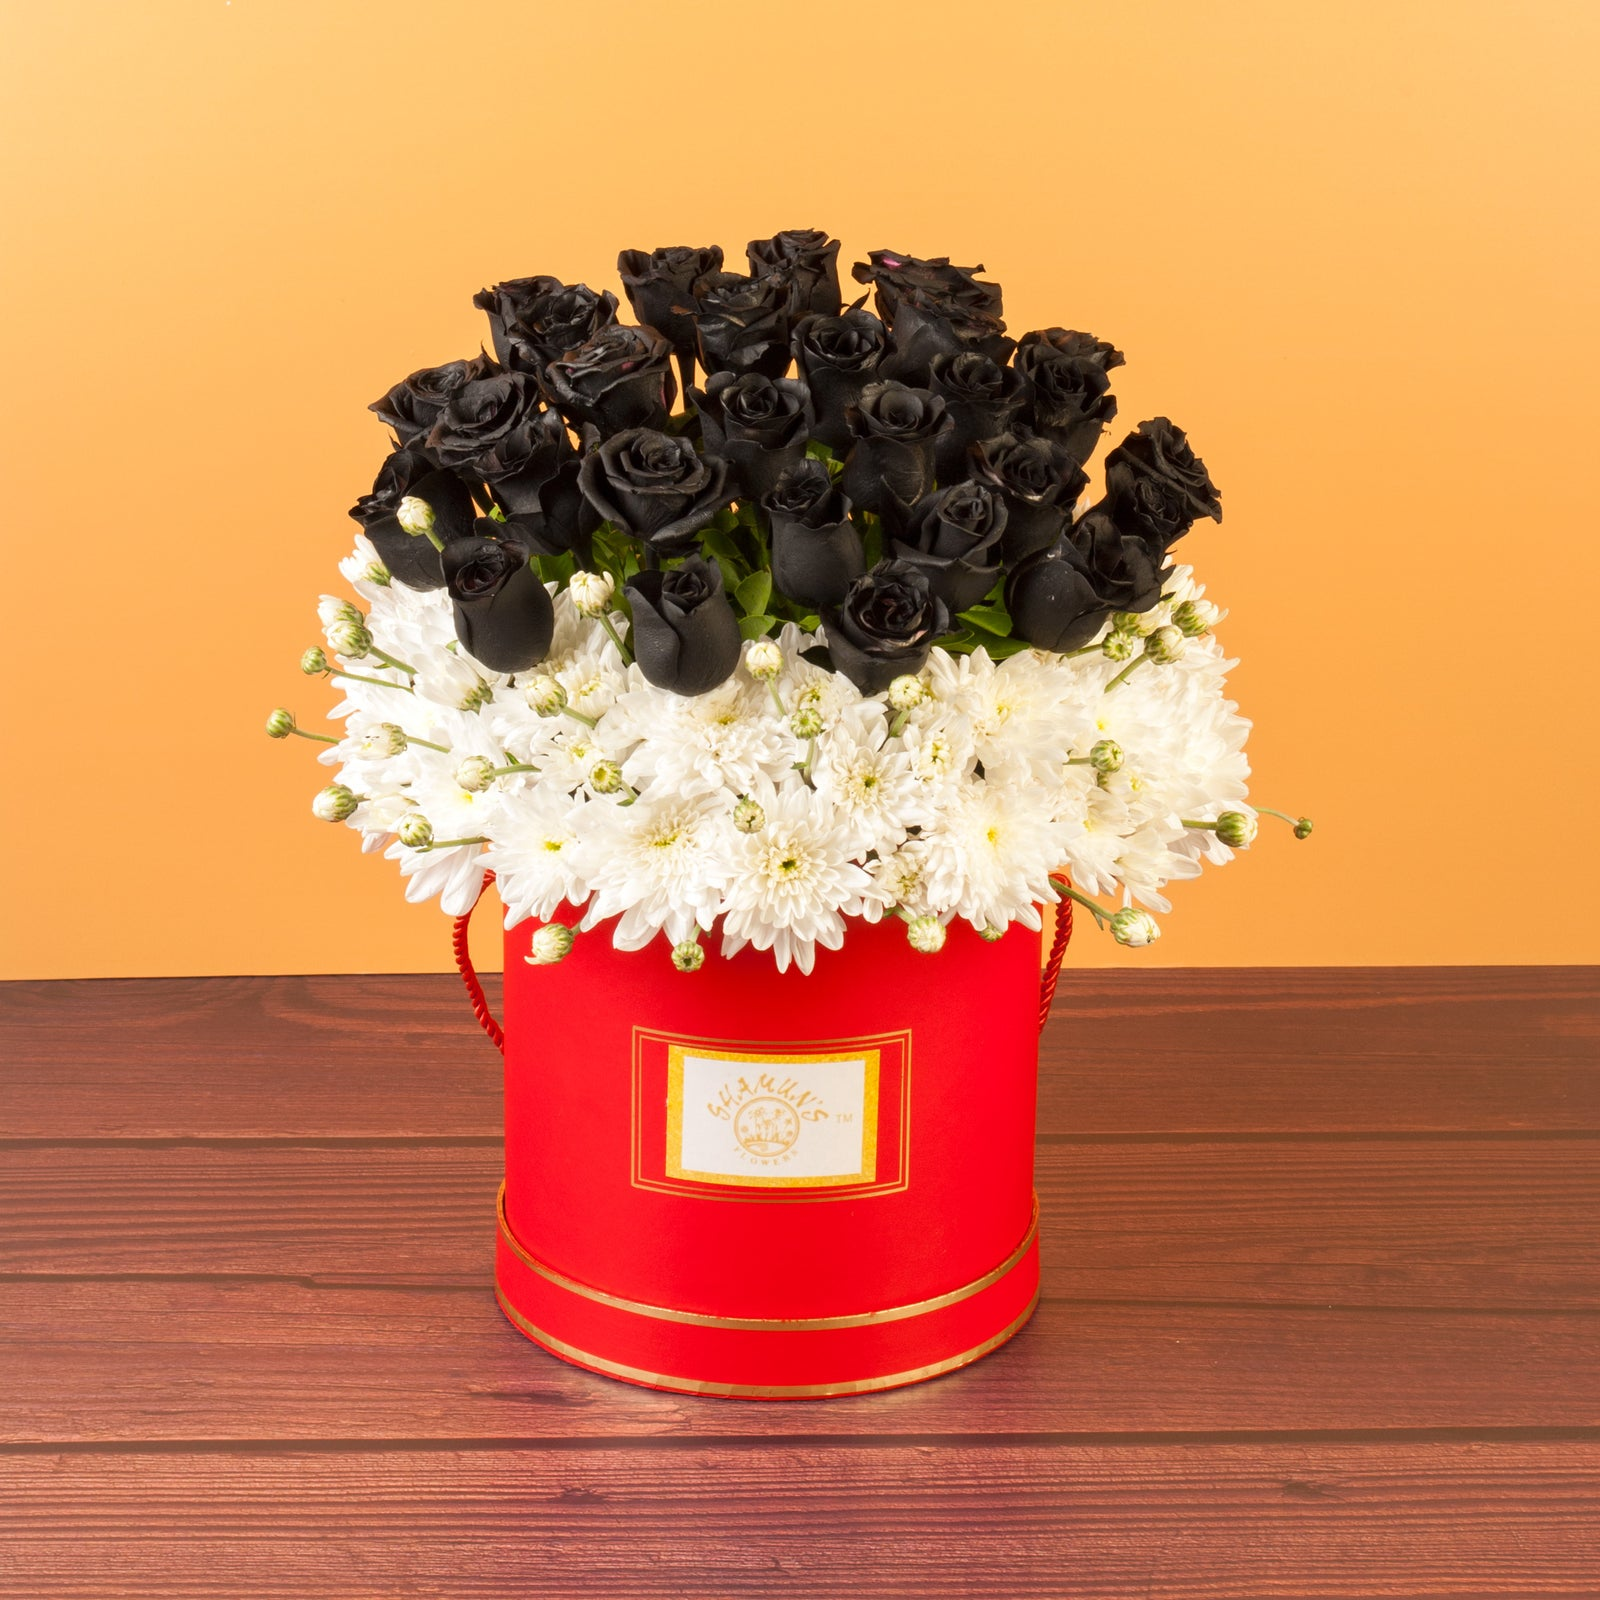 Black Roses Delivered In Flower Box